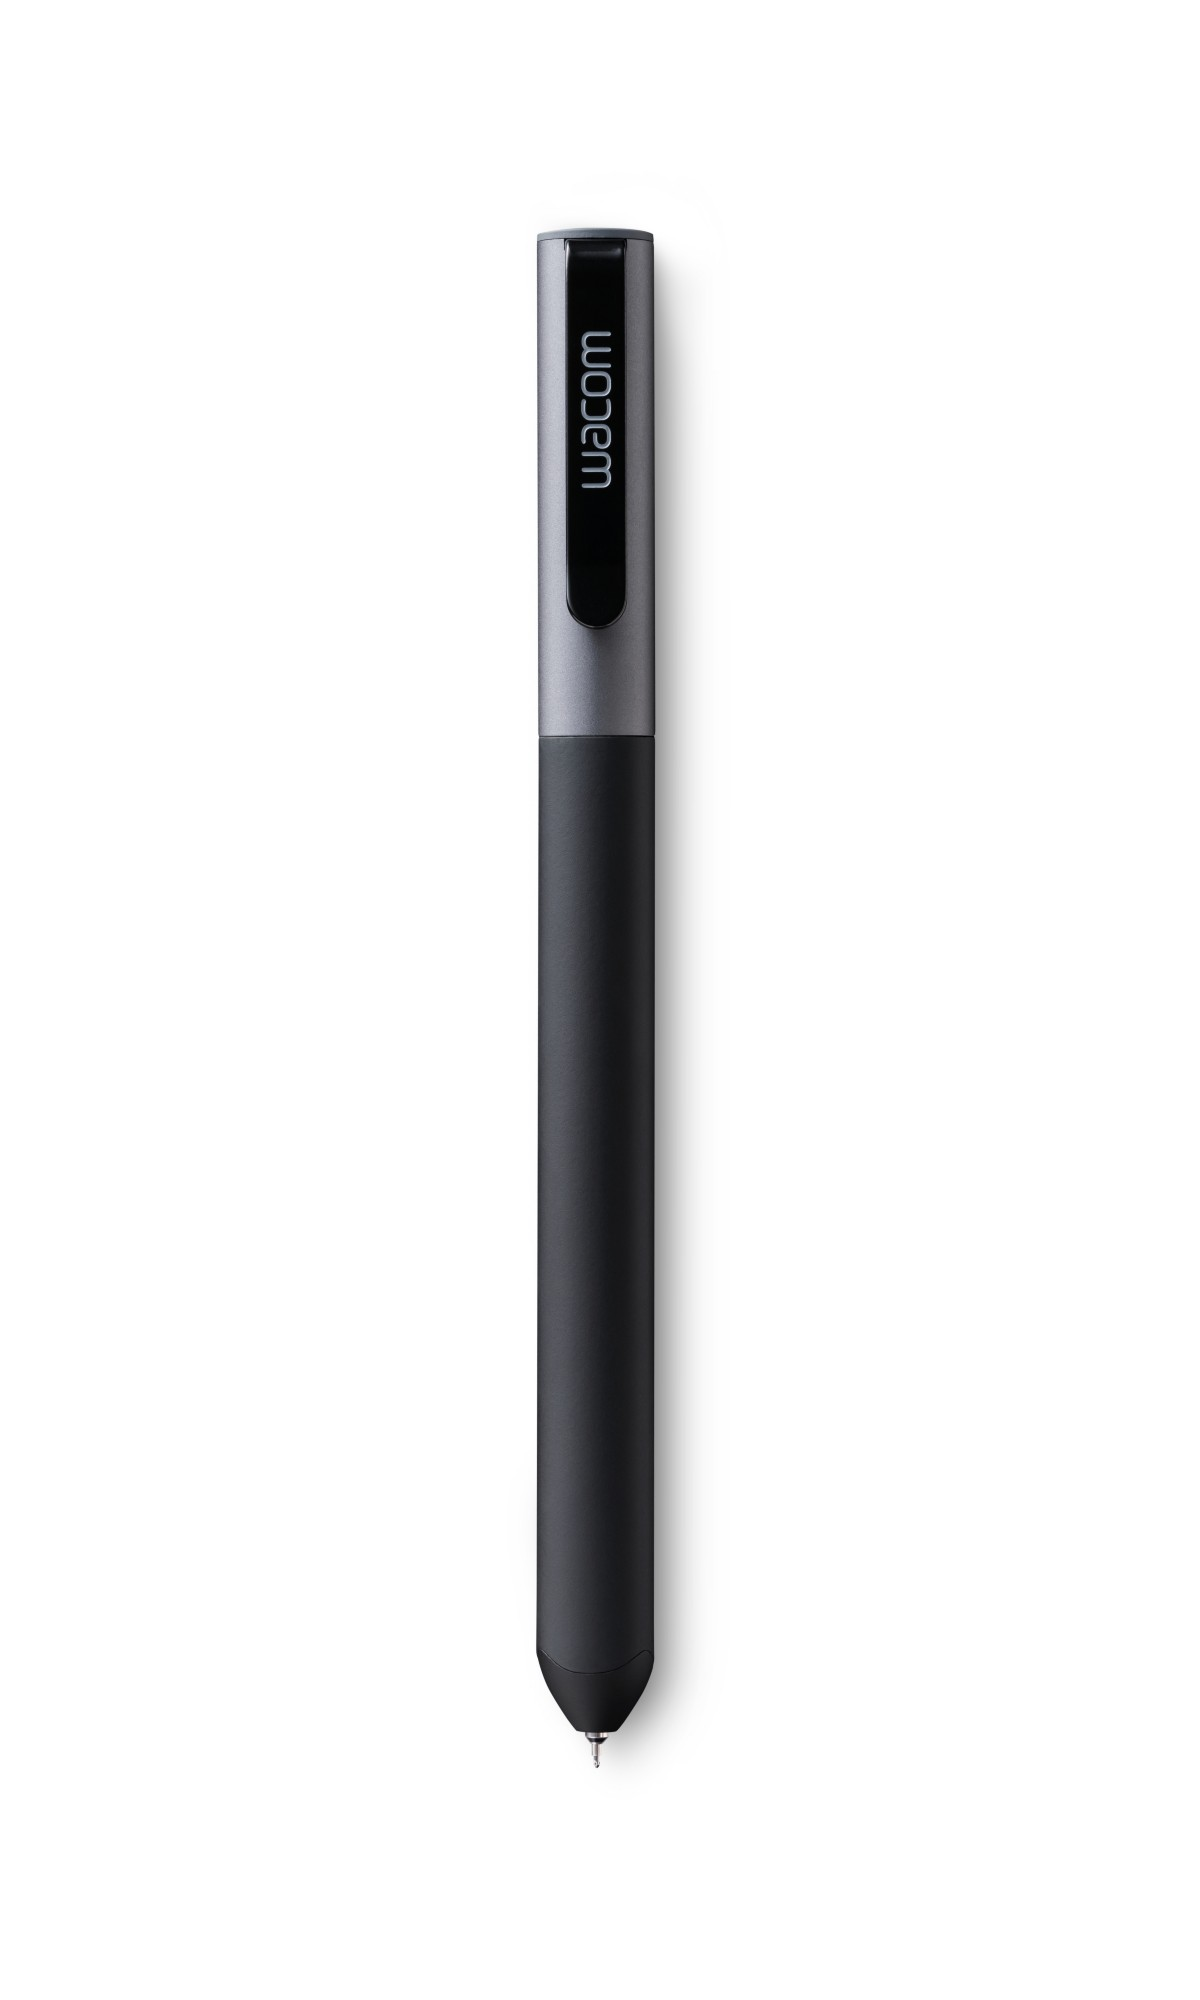 WACOM UP370801 STYLUS PEN BLACK,GREY